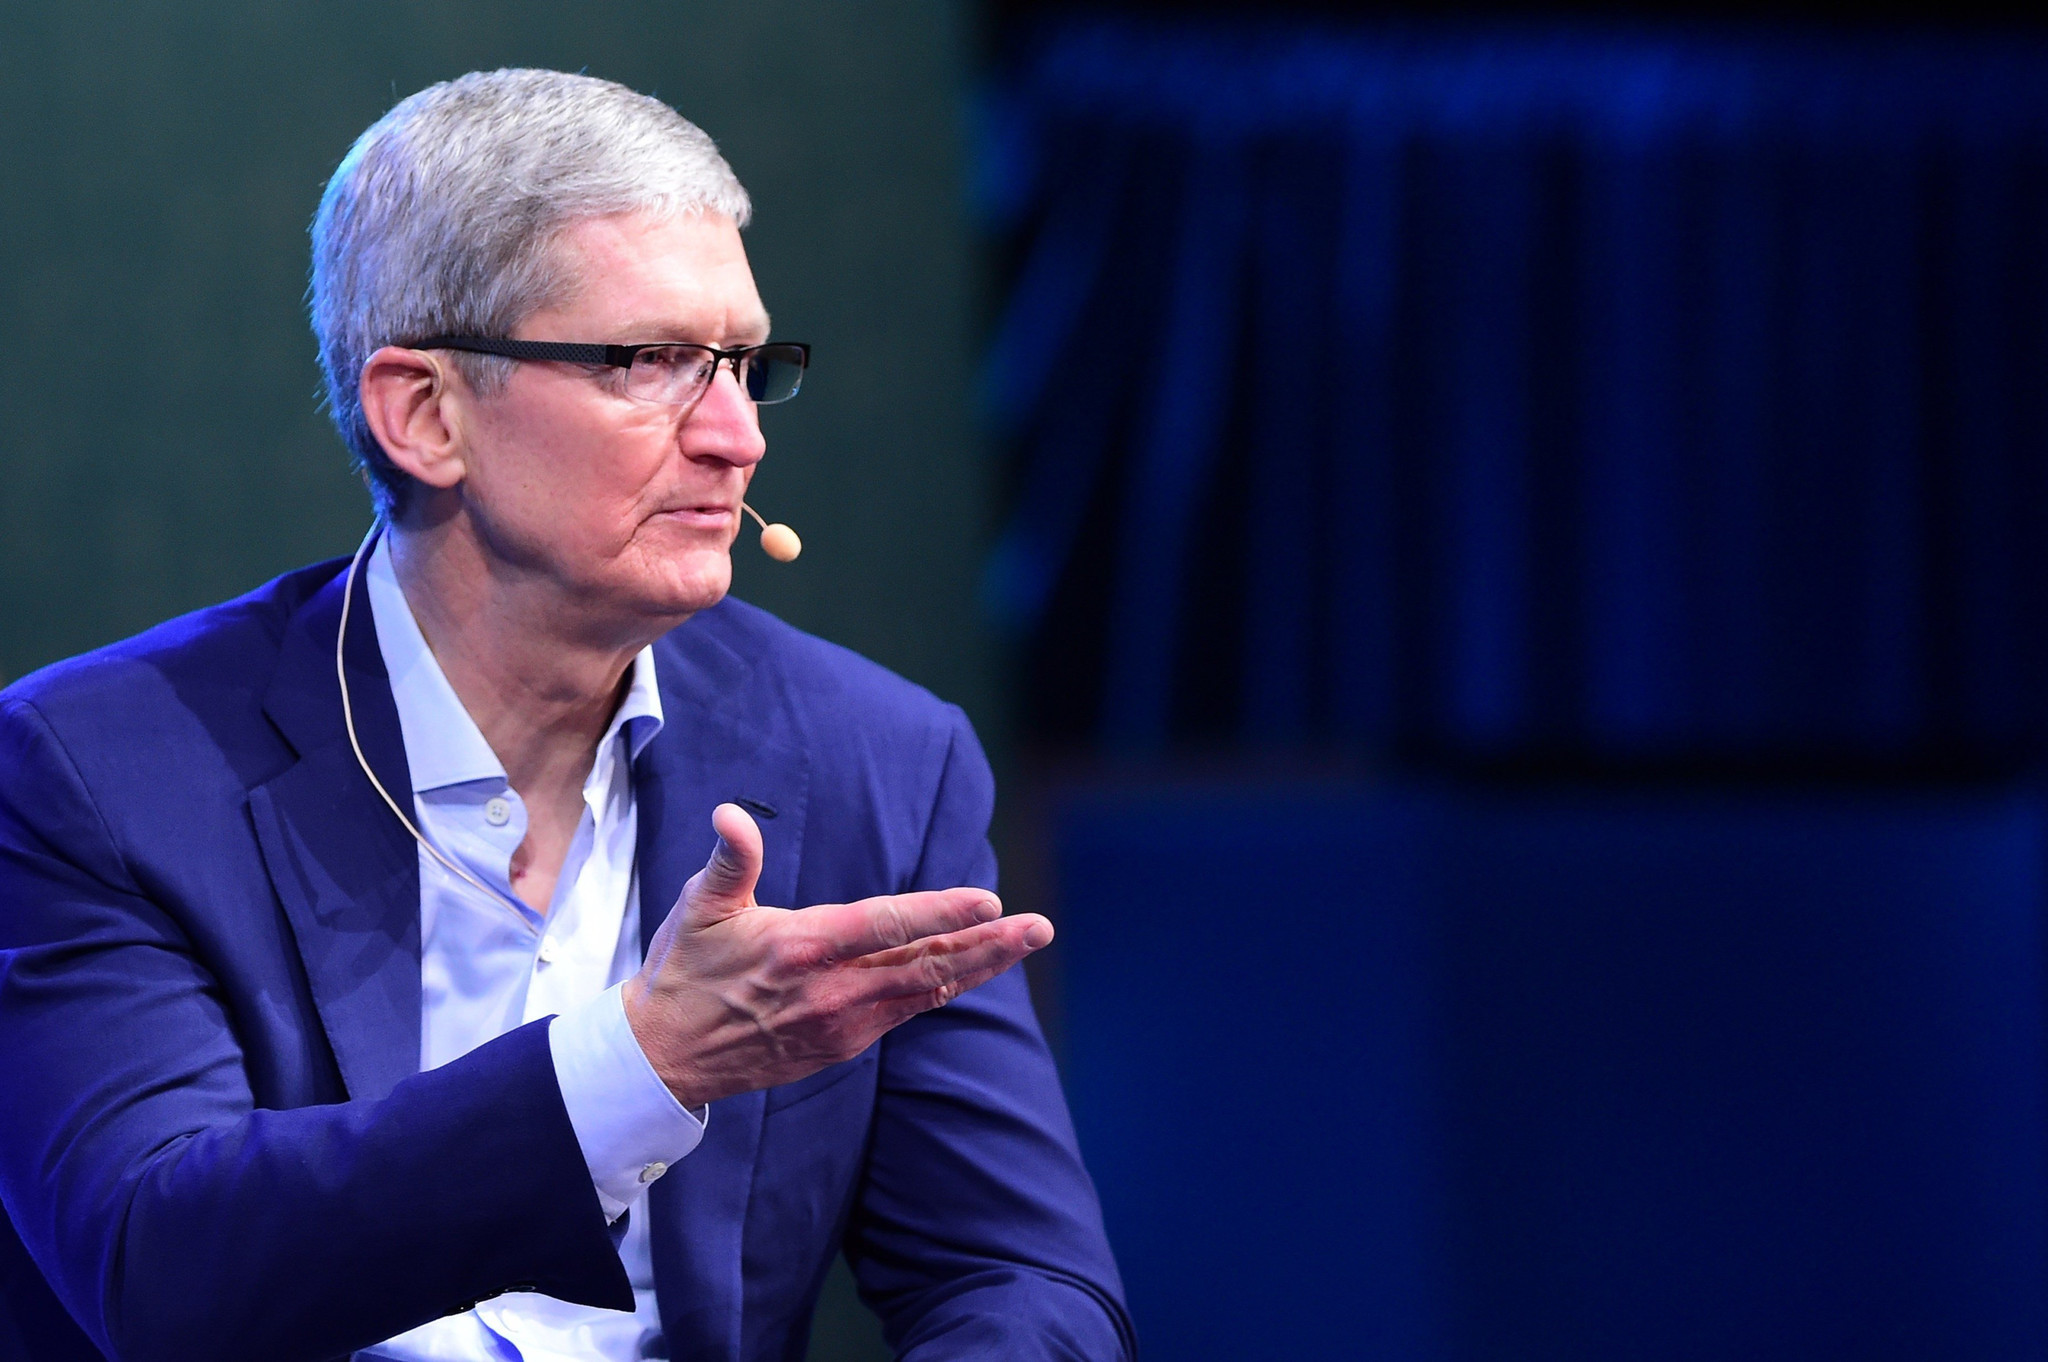 Apple's Tim Cook sees 'massive change' for car business